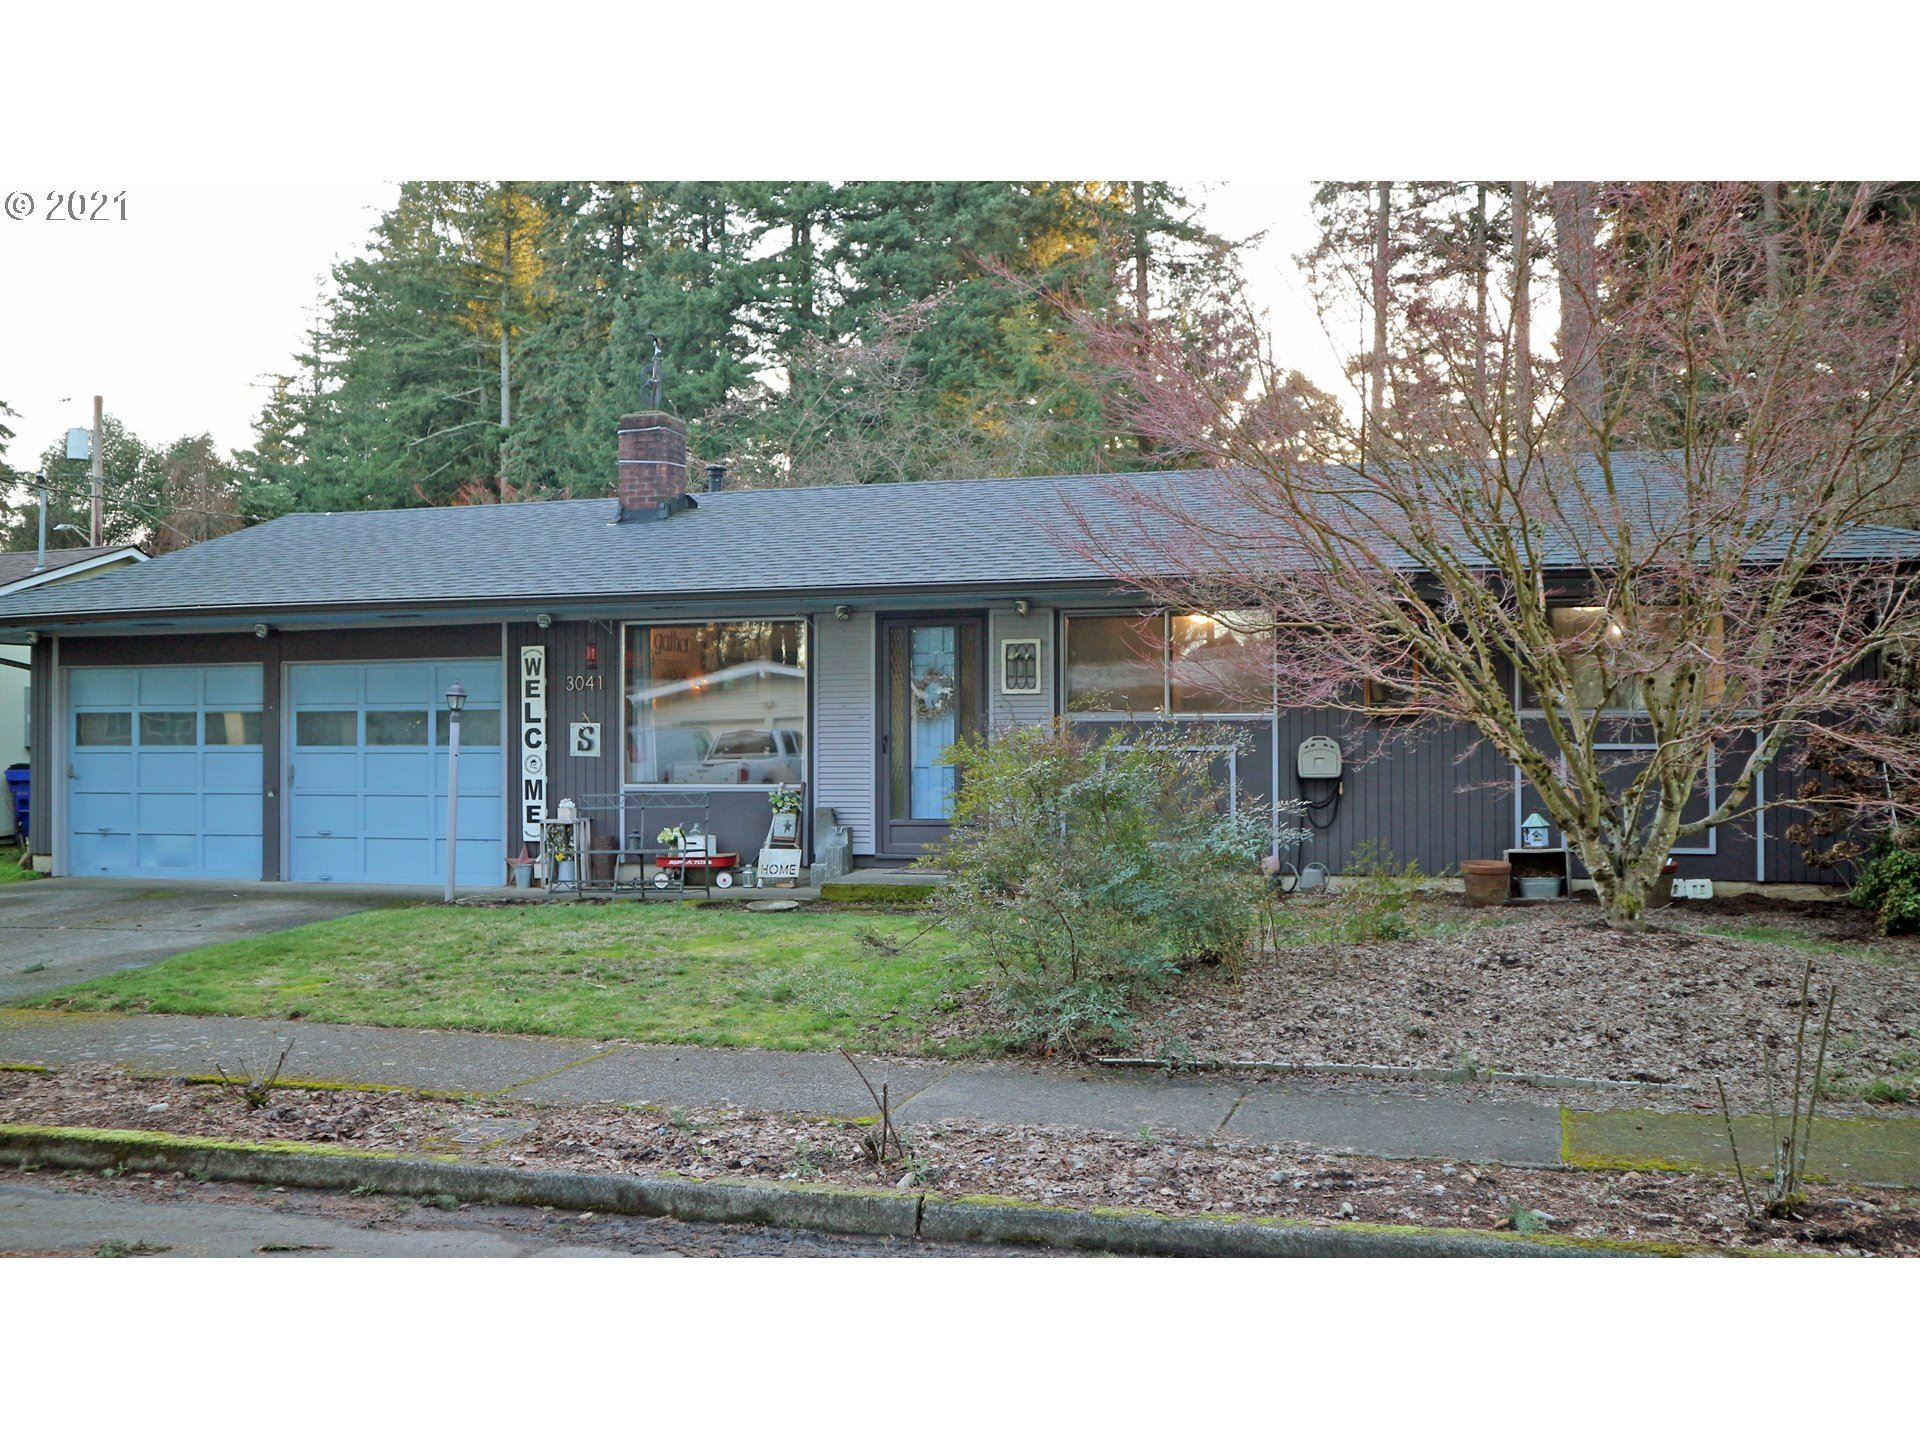 3041 SE 156TH AVE, Portland, OR 97236 - MLS#: 21683944